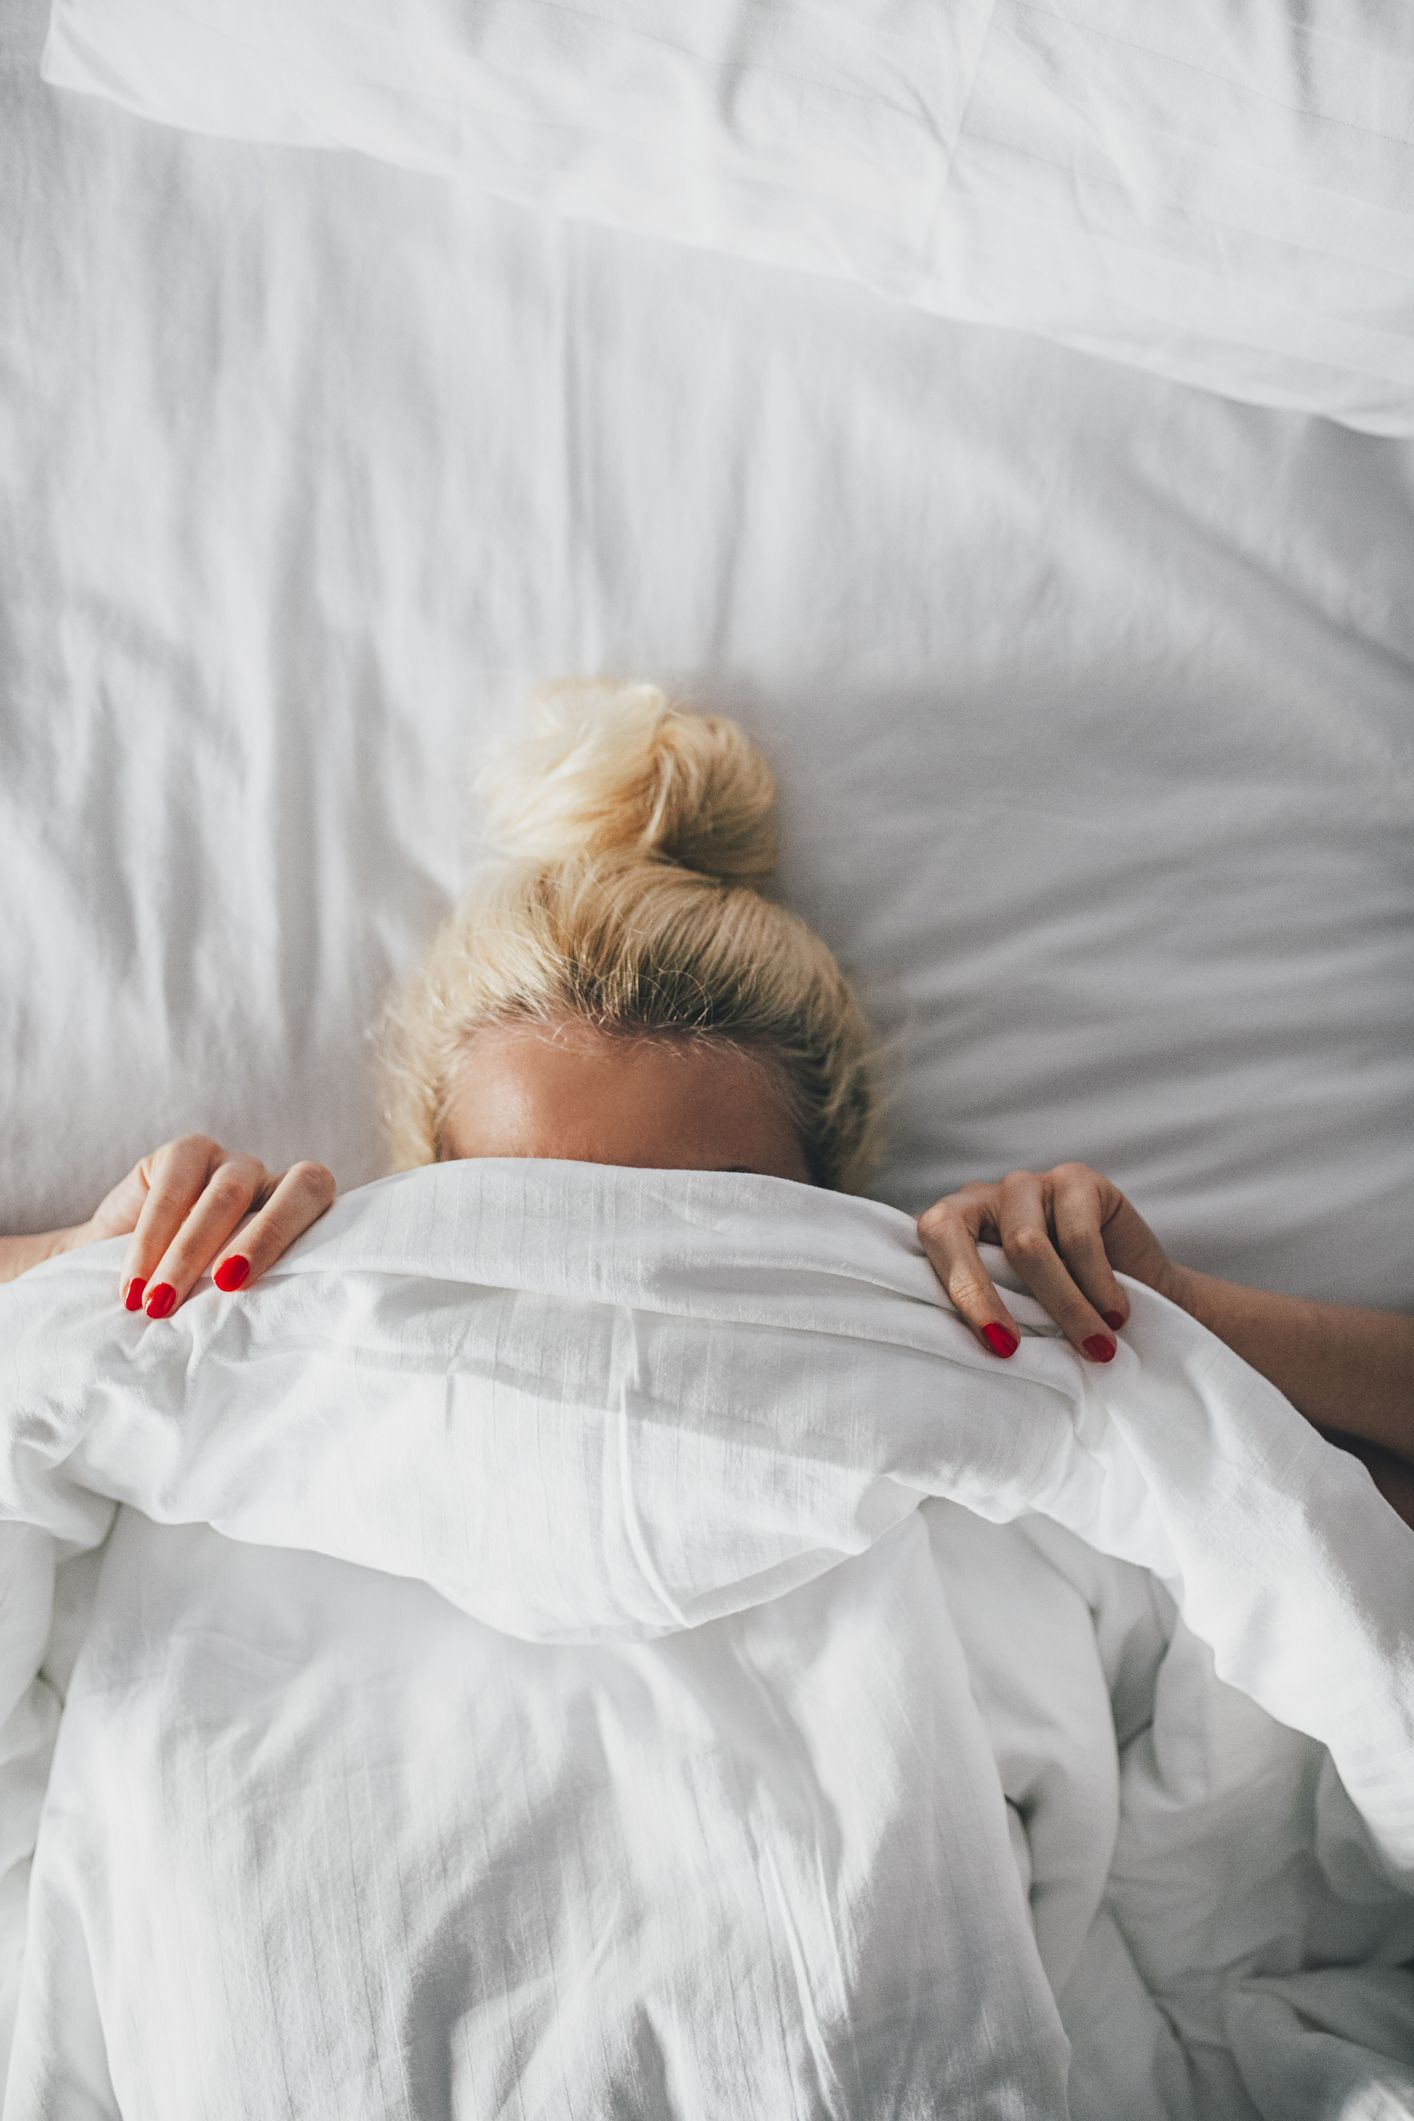 What Is Hangover Anxiety—And How Can You Get Rid Of It?